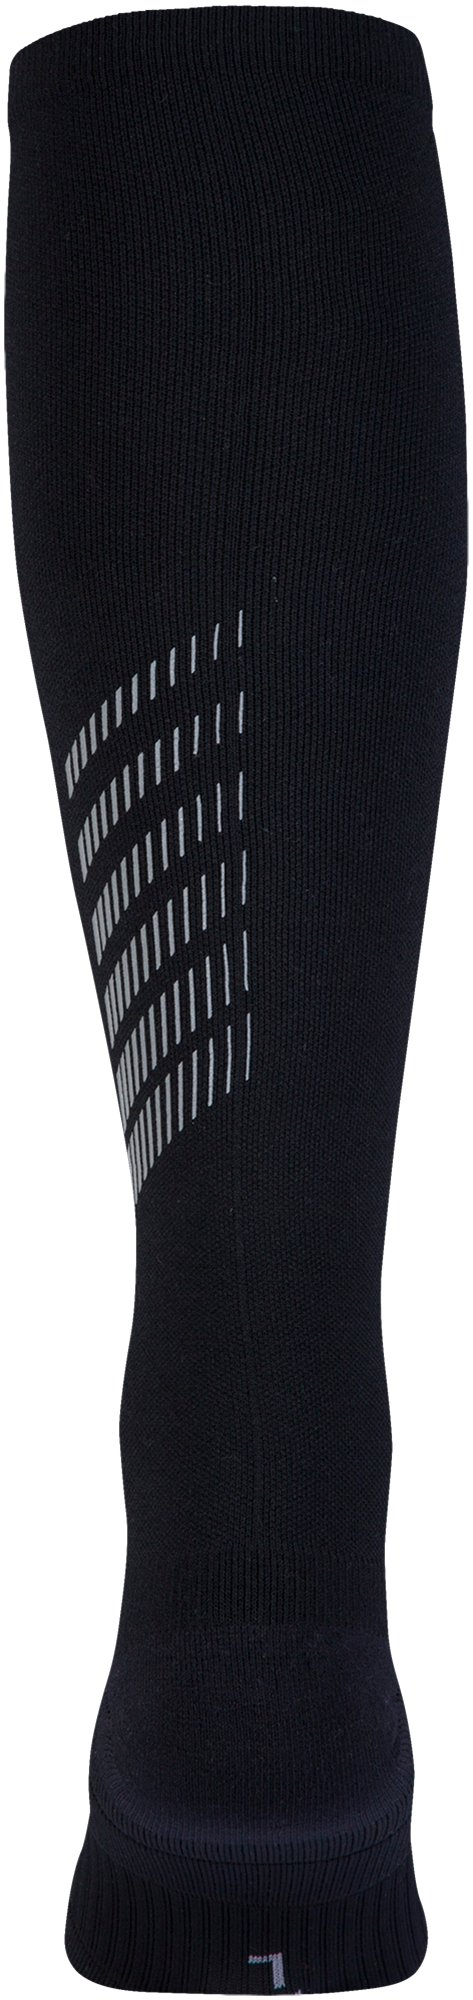 Men's UA Reflective Over-The-Calf Socks, Black ,